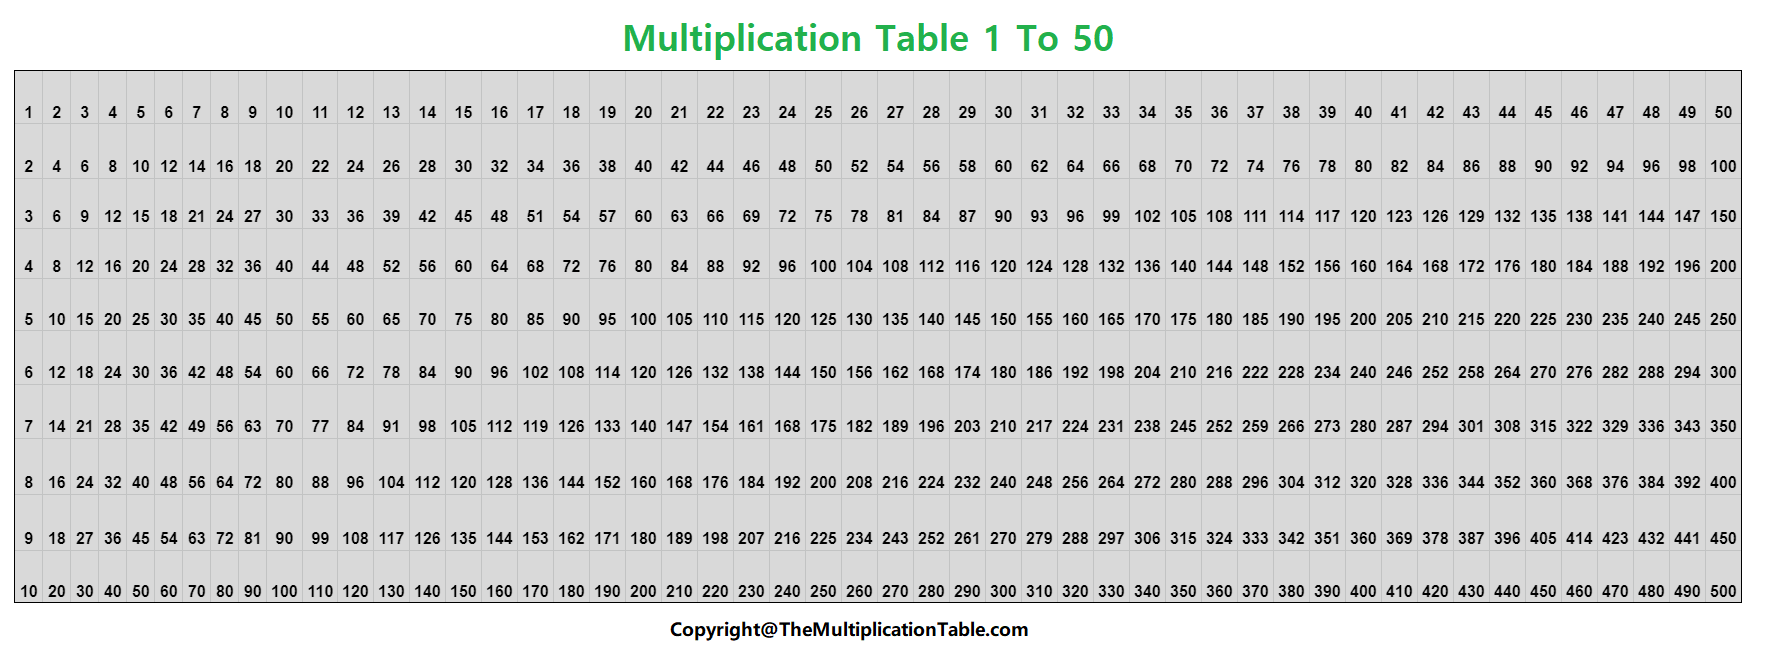 Printable Multiplication Table 1 To 50